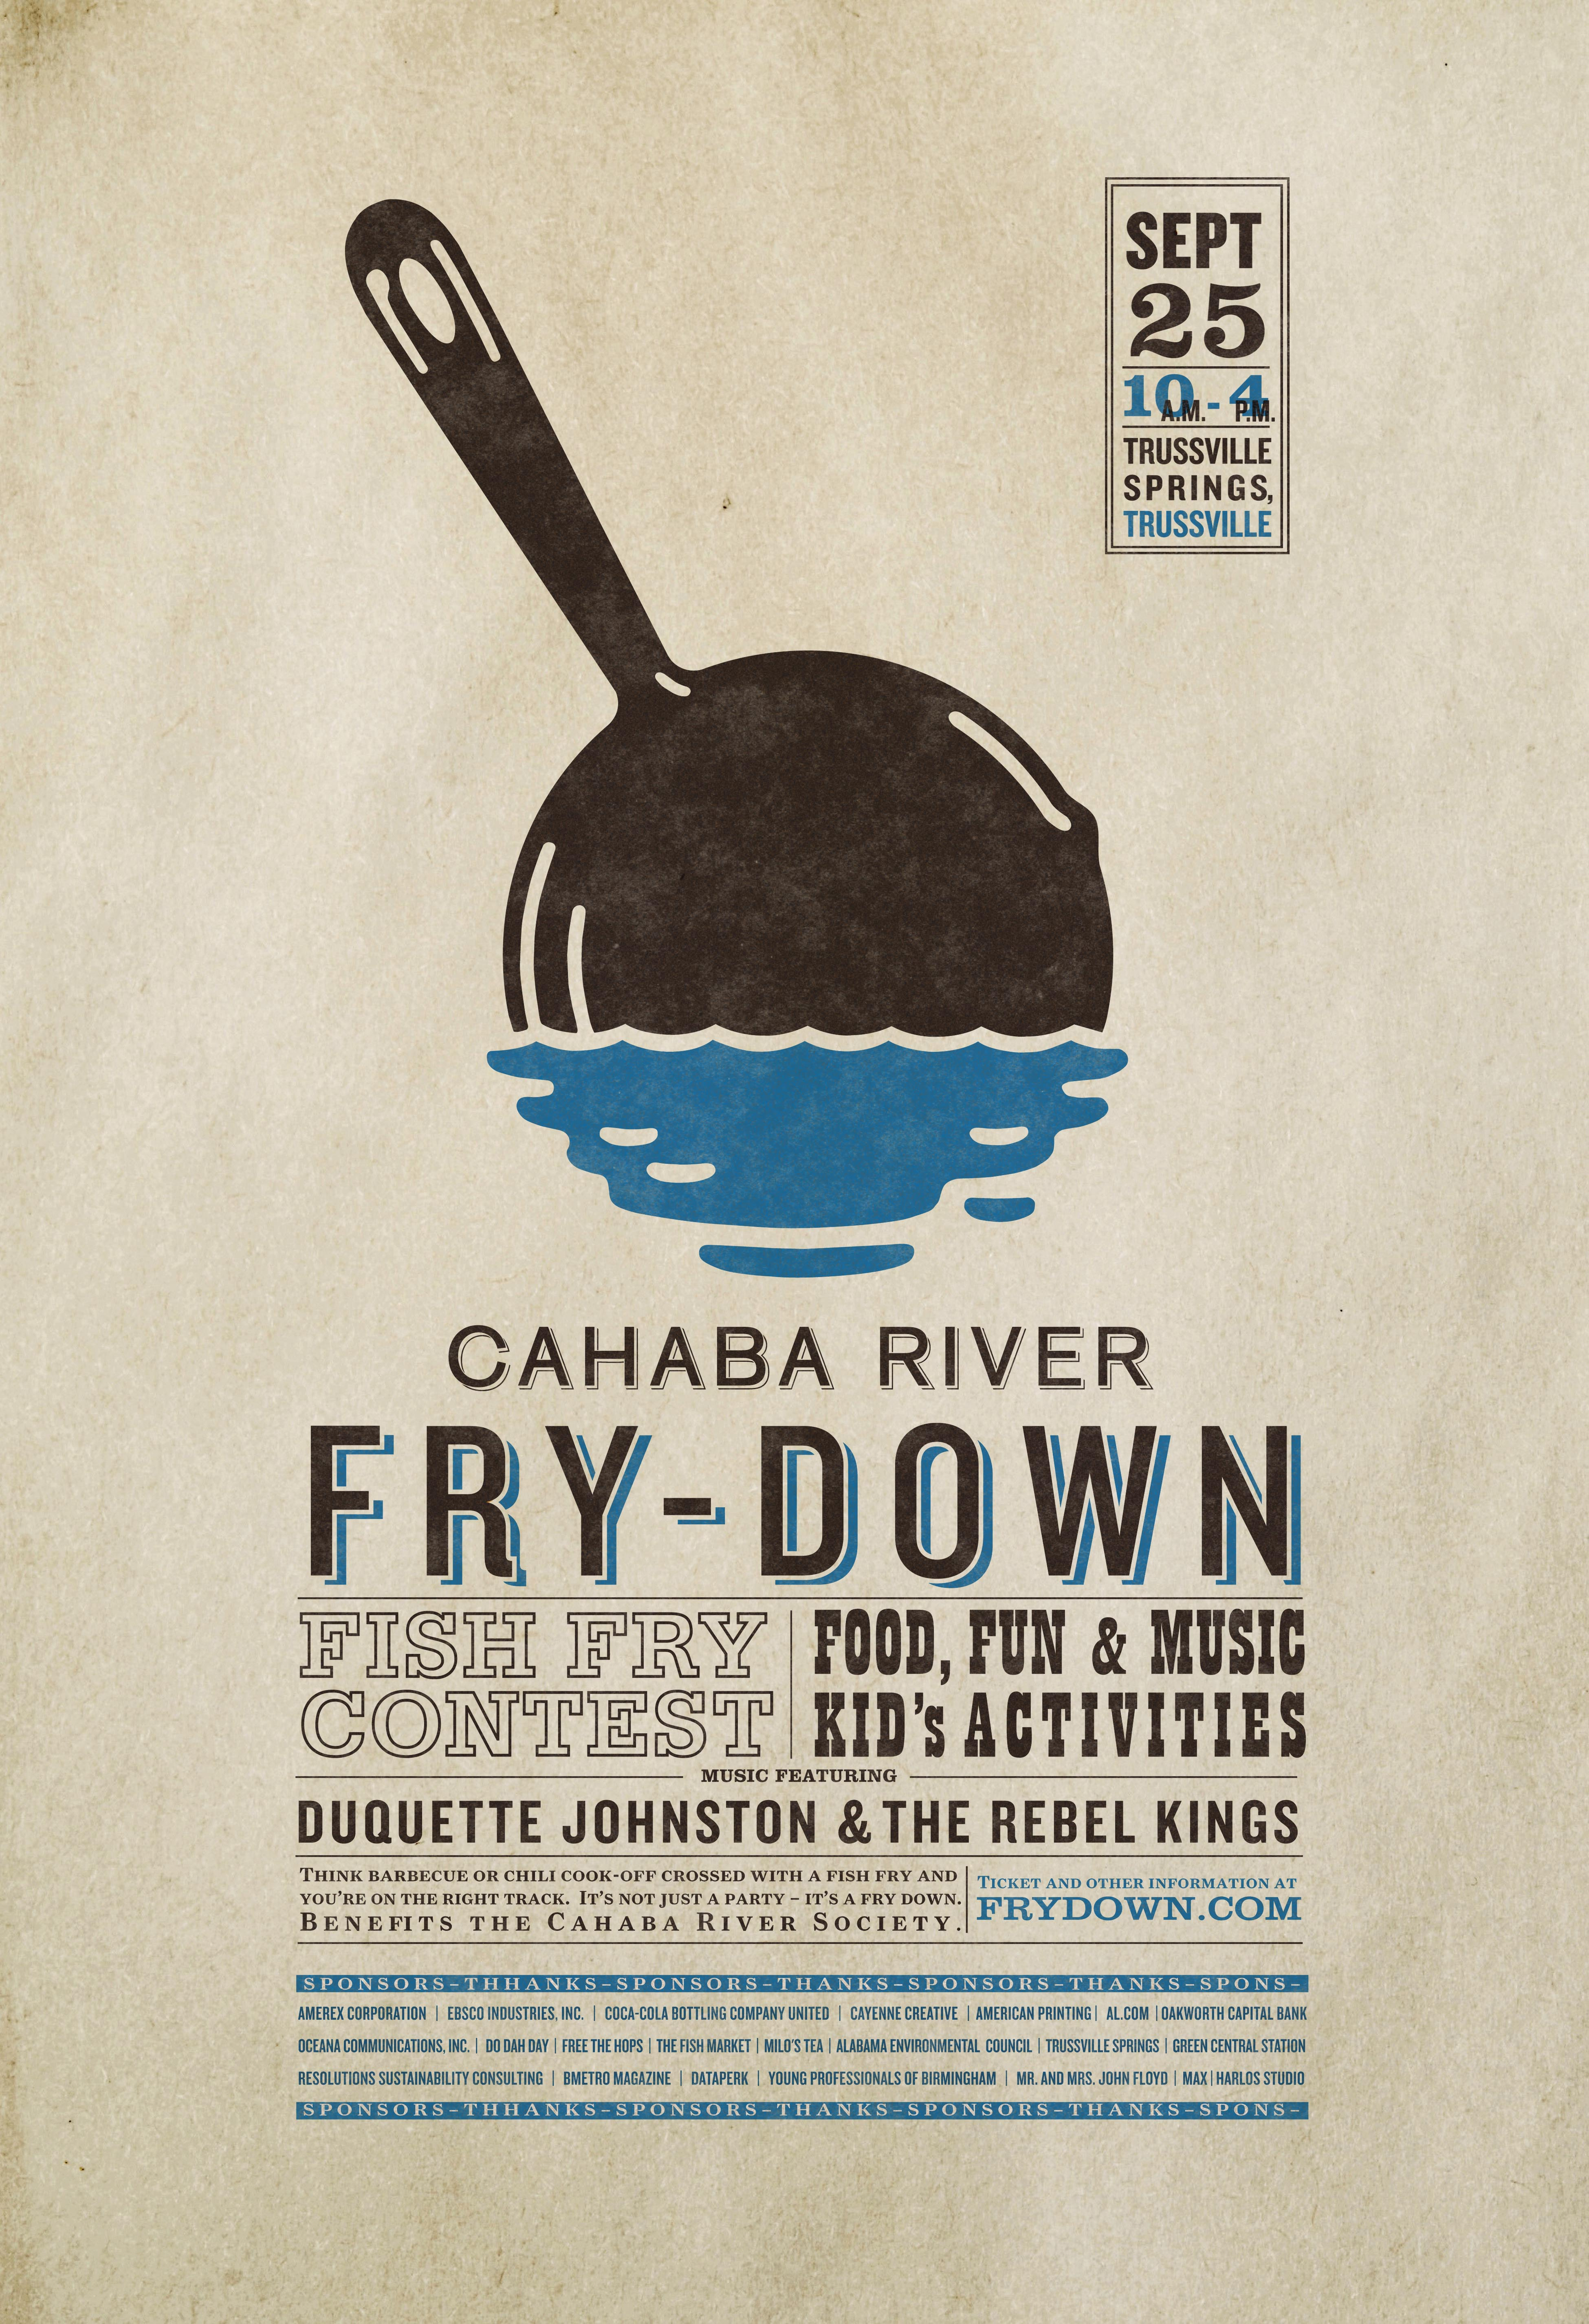 Poster design for Cahaba River Fry-Down featuring logo design